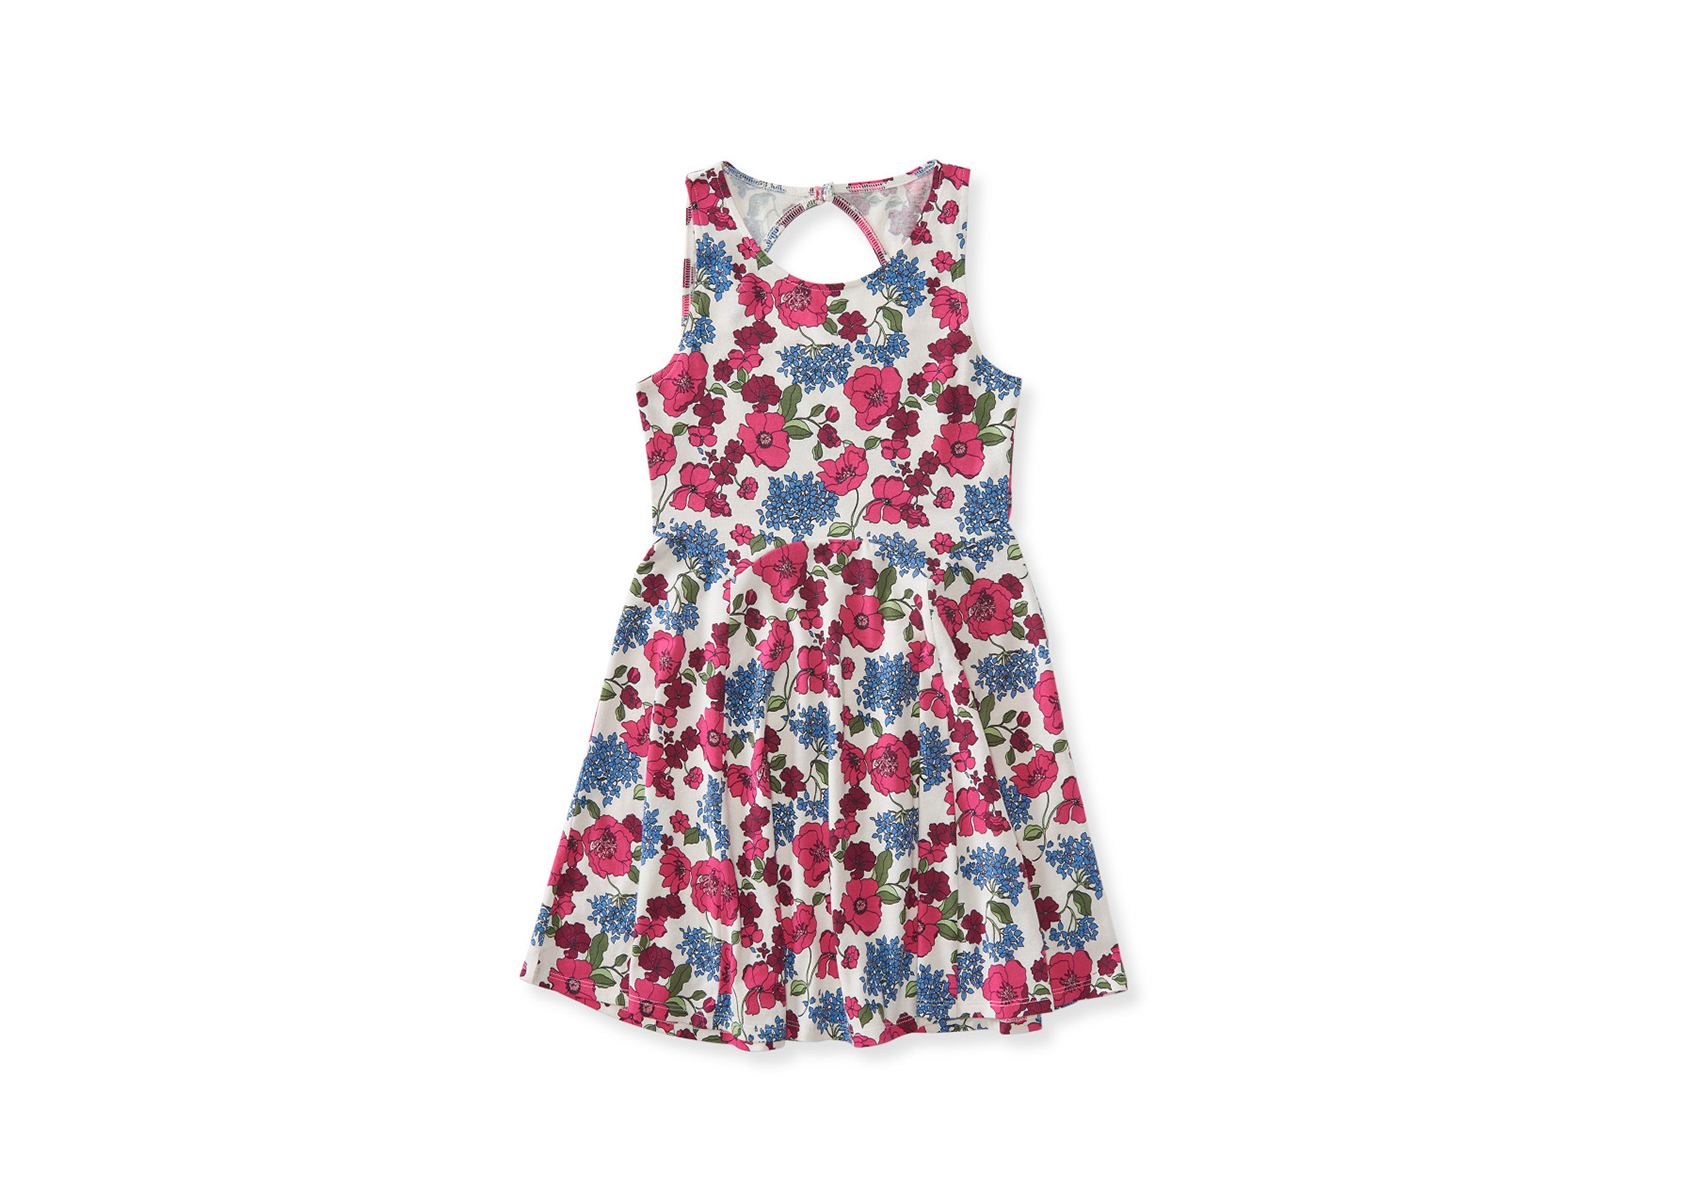 Aeropostale Kids' Floral Godet Skater Dress